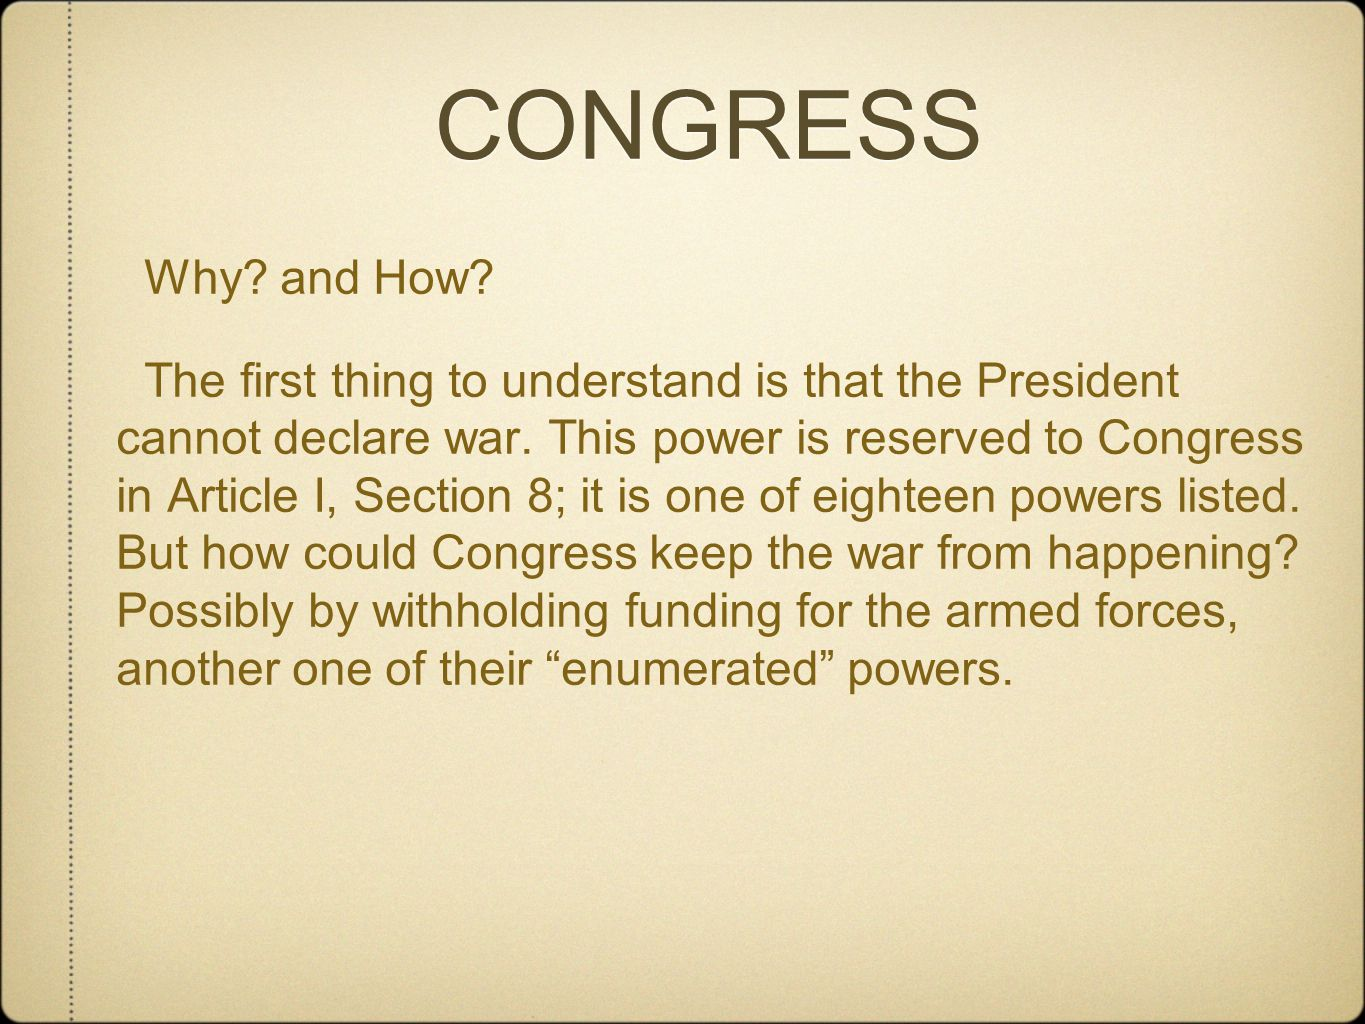 CONGRESS Why and How